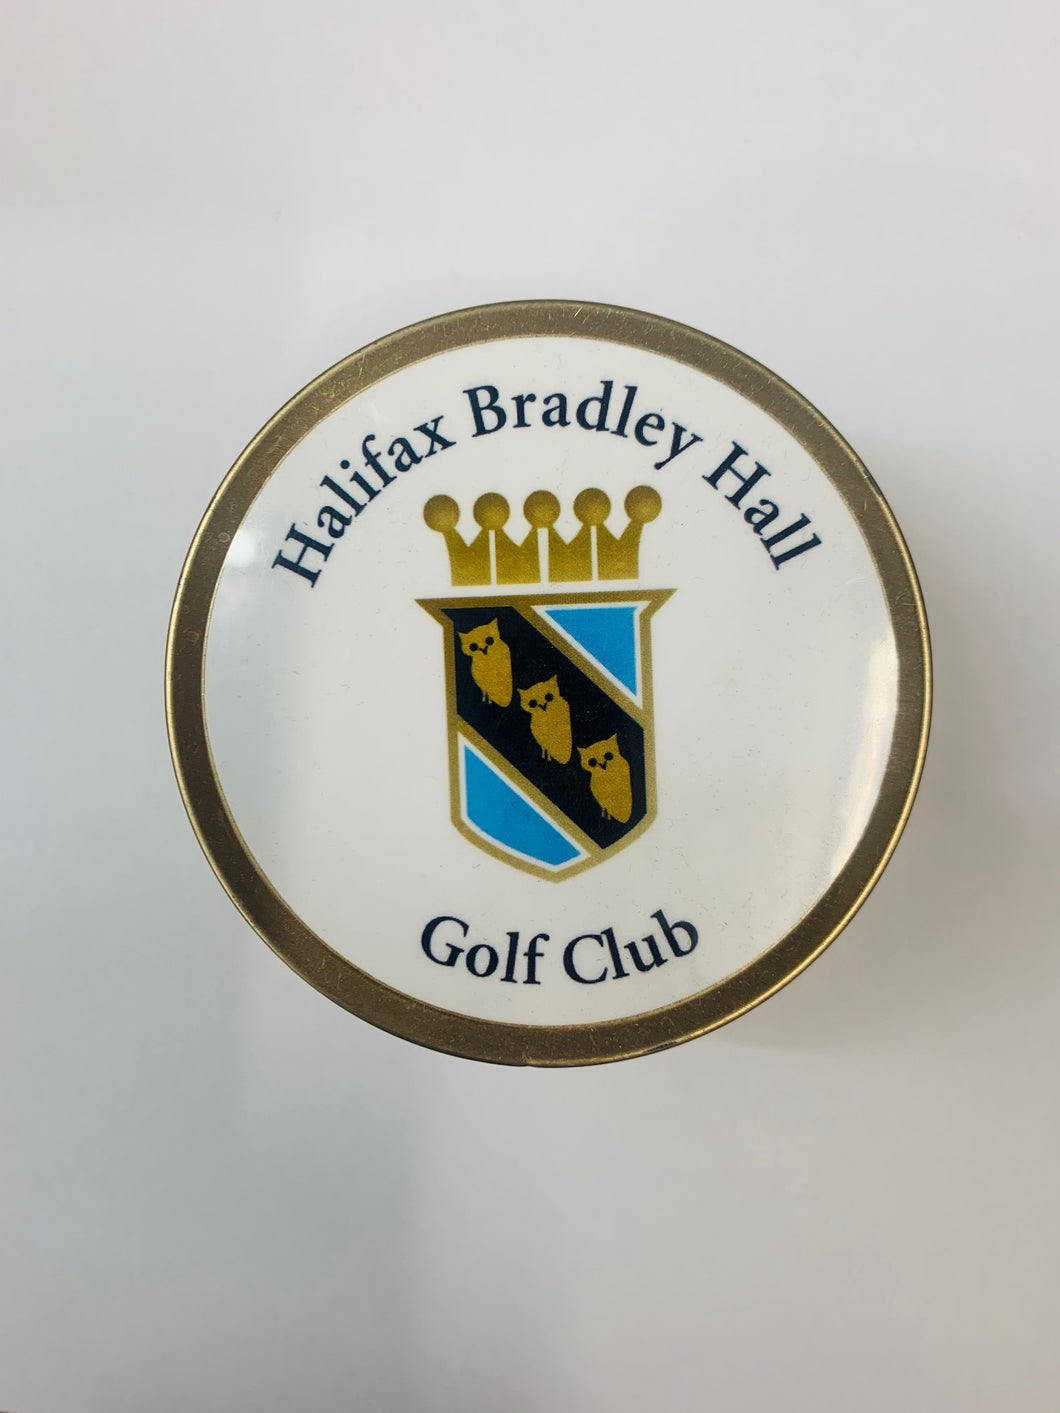 Halifax Bradley Hall Golf Club Tin of Tees